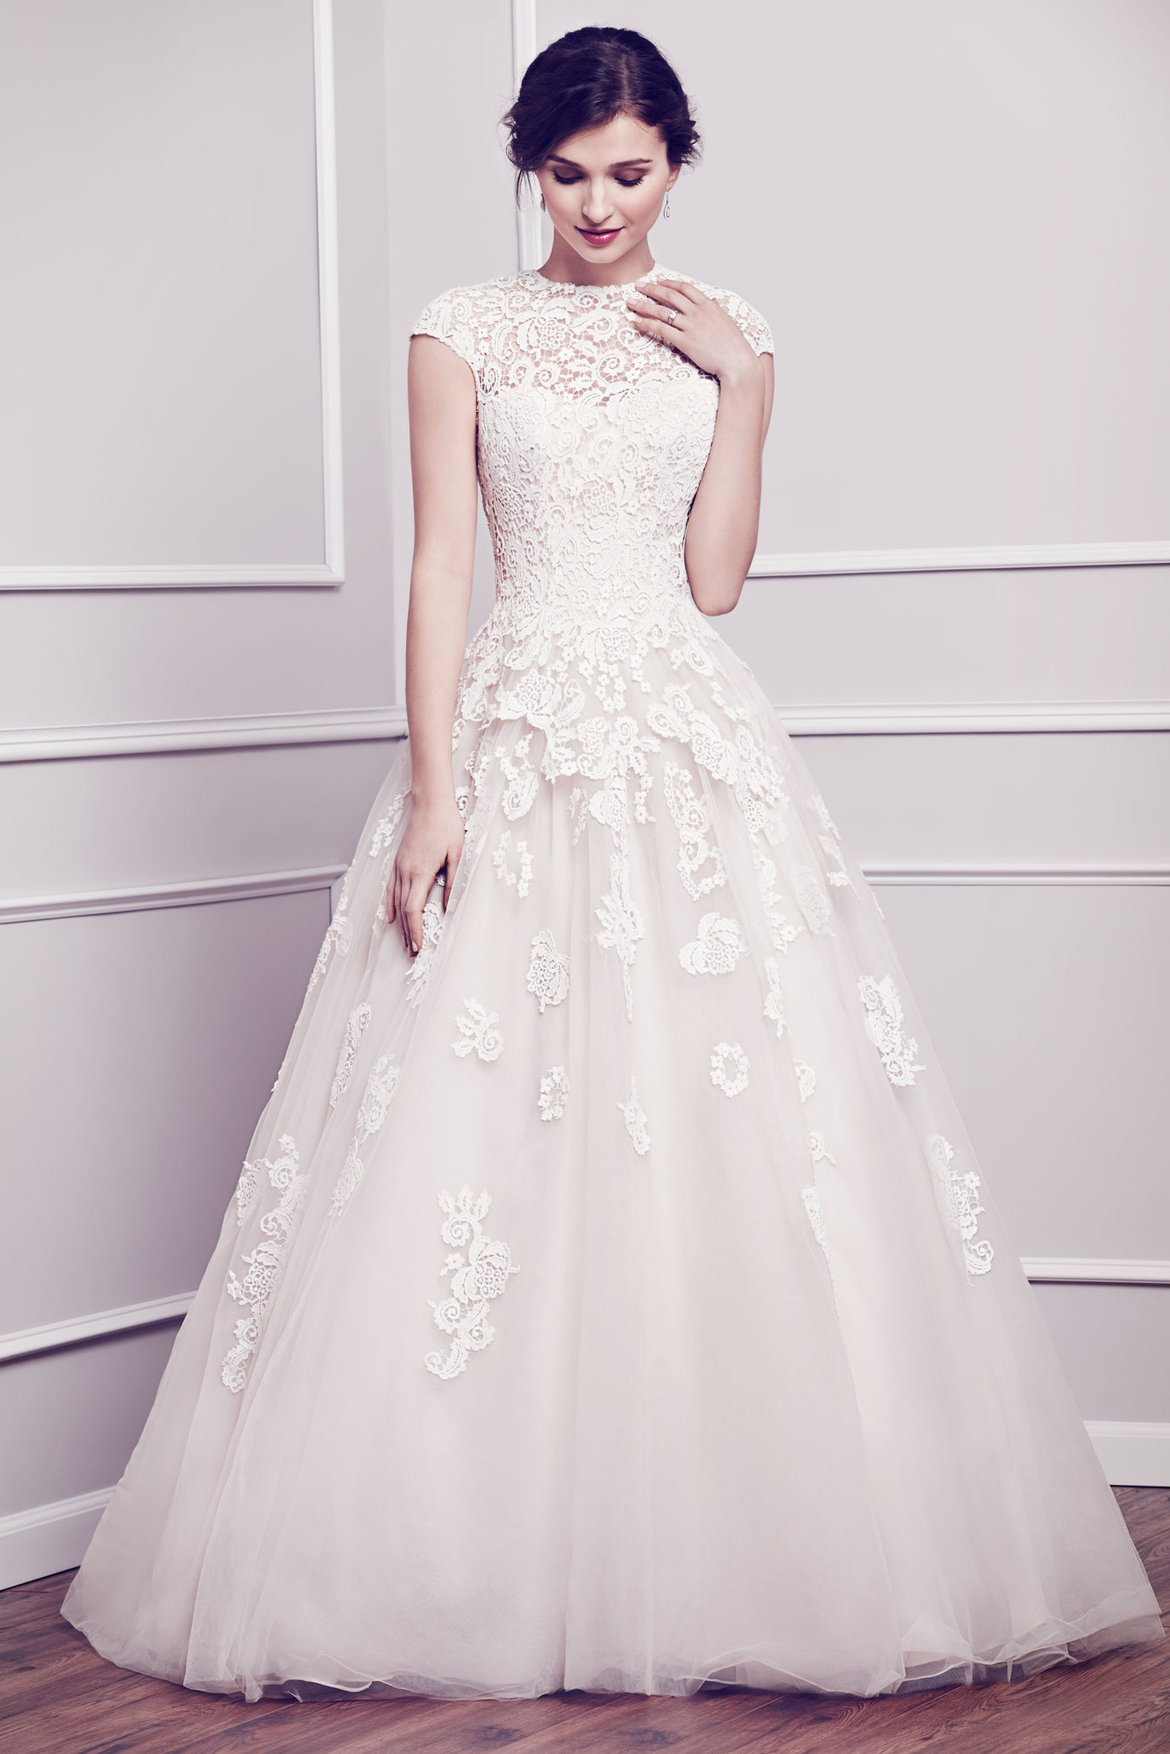 top wedding gowns most popular wedding dresses See more Kenneth Winston dresses in our gown gallery